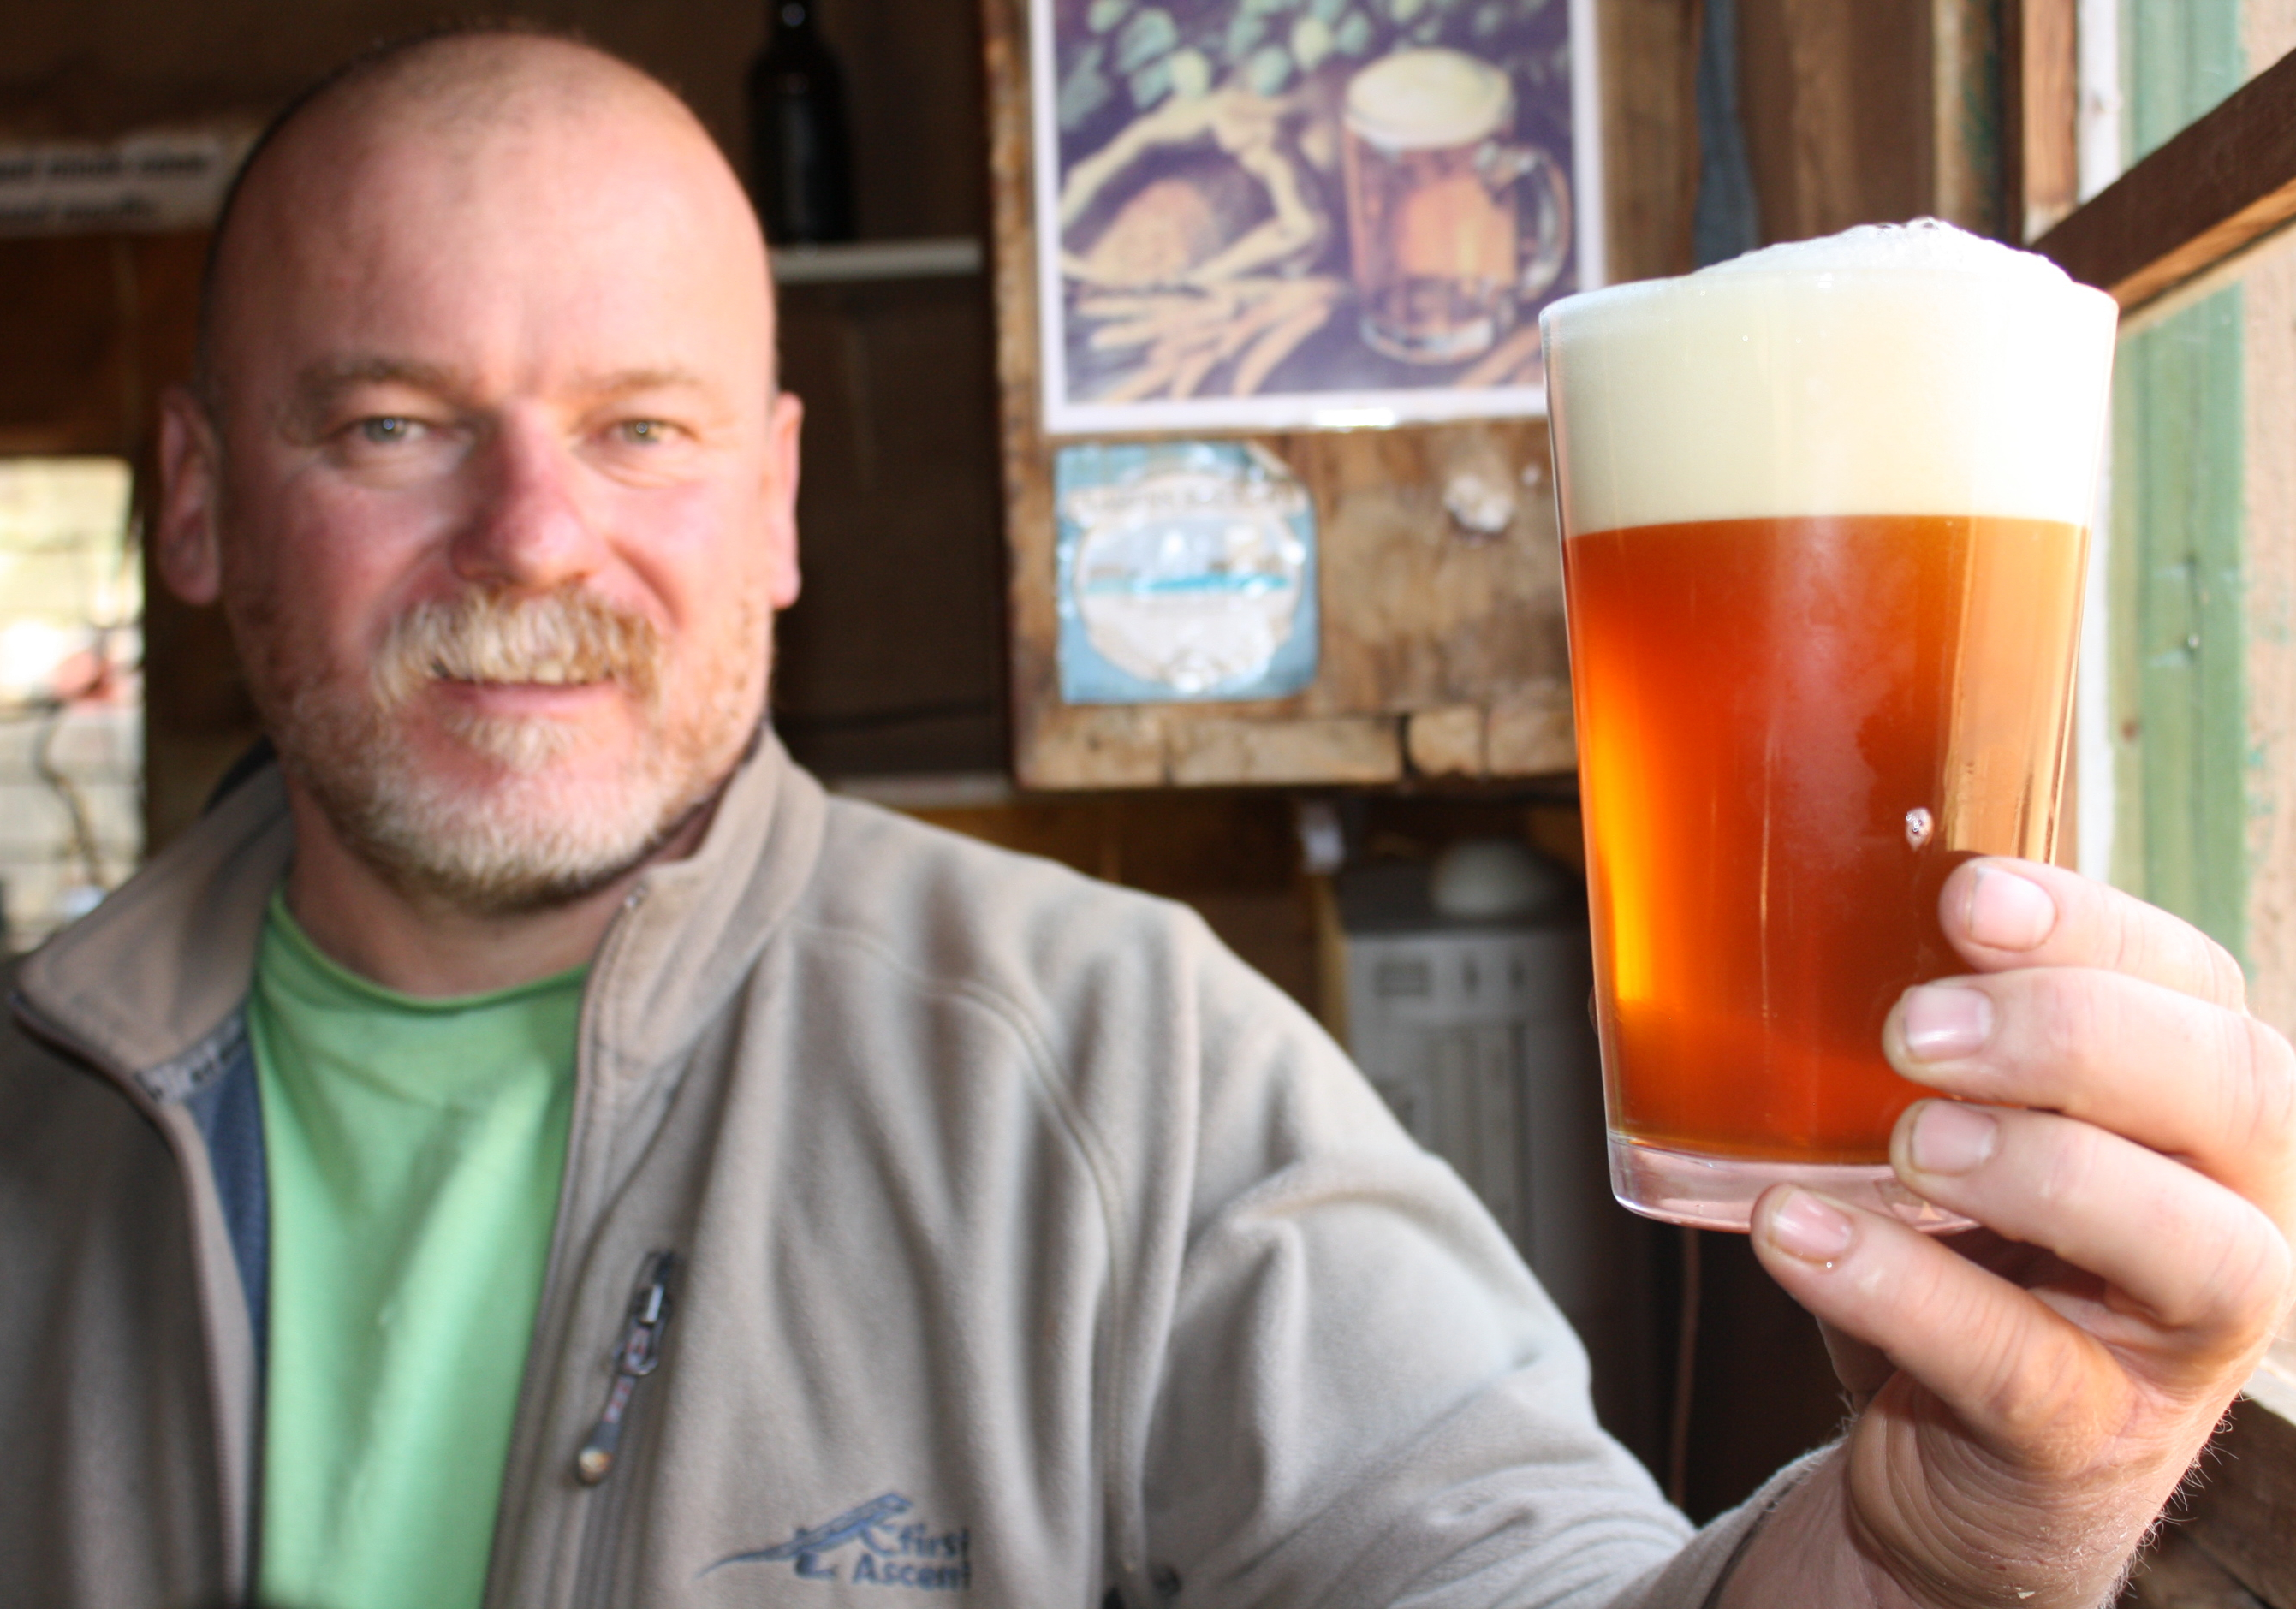 Dirk van Tonder of South Africa admires a freshly poured 'African pale ale' that he brewed using the J-17-63 hop (VOA/Darren Taylor)